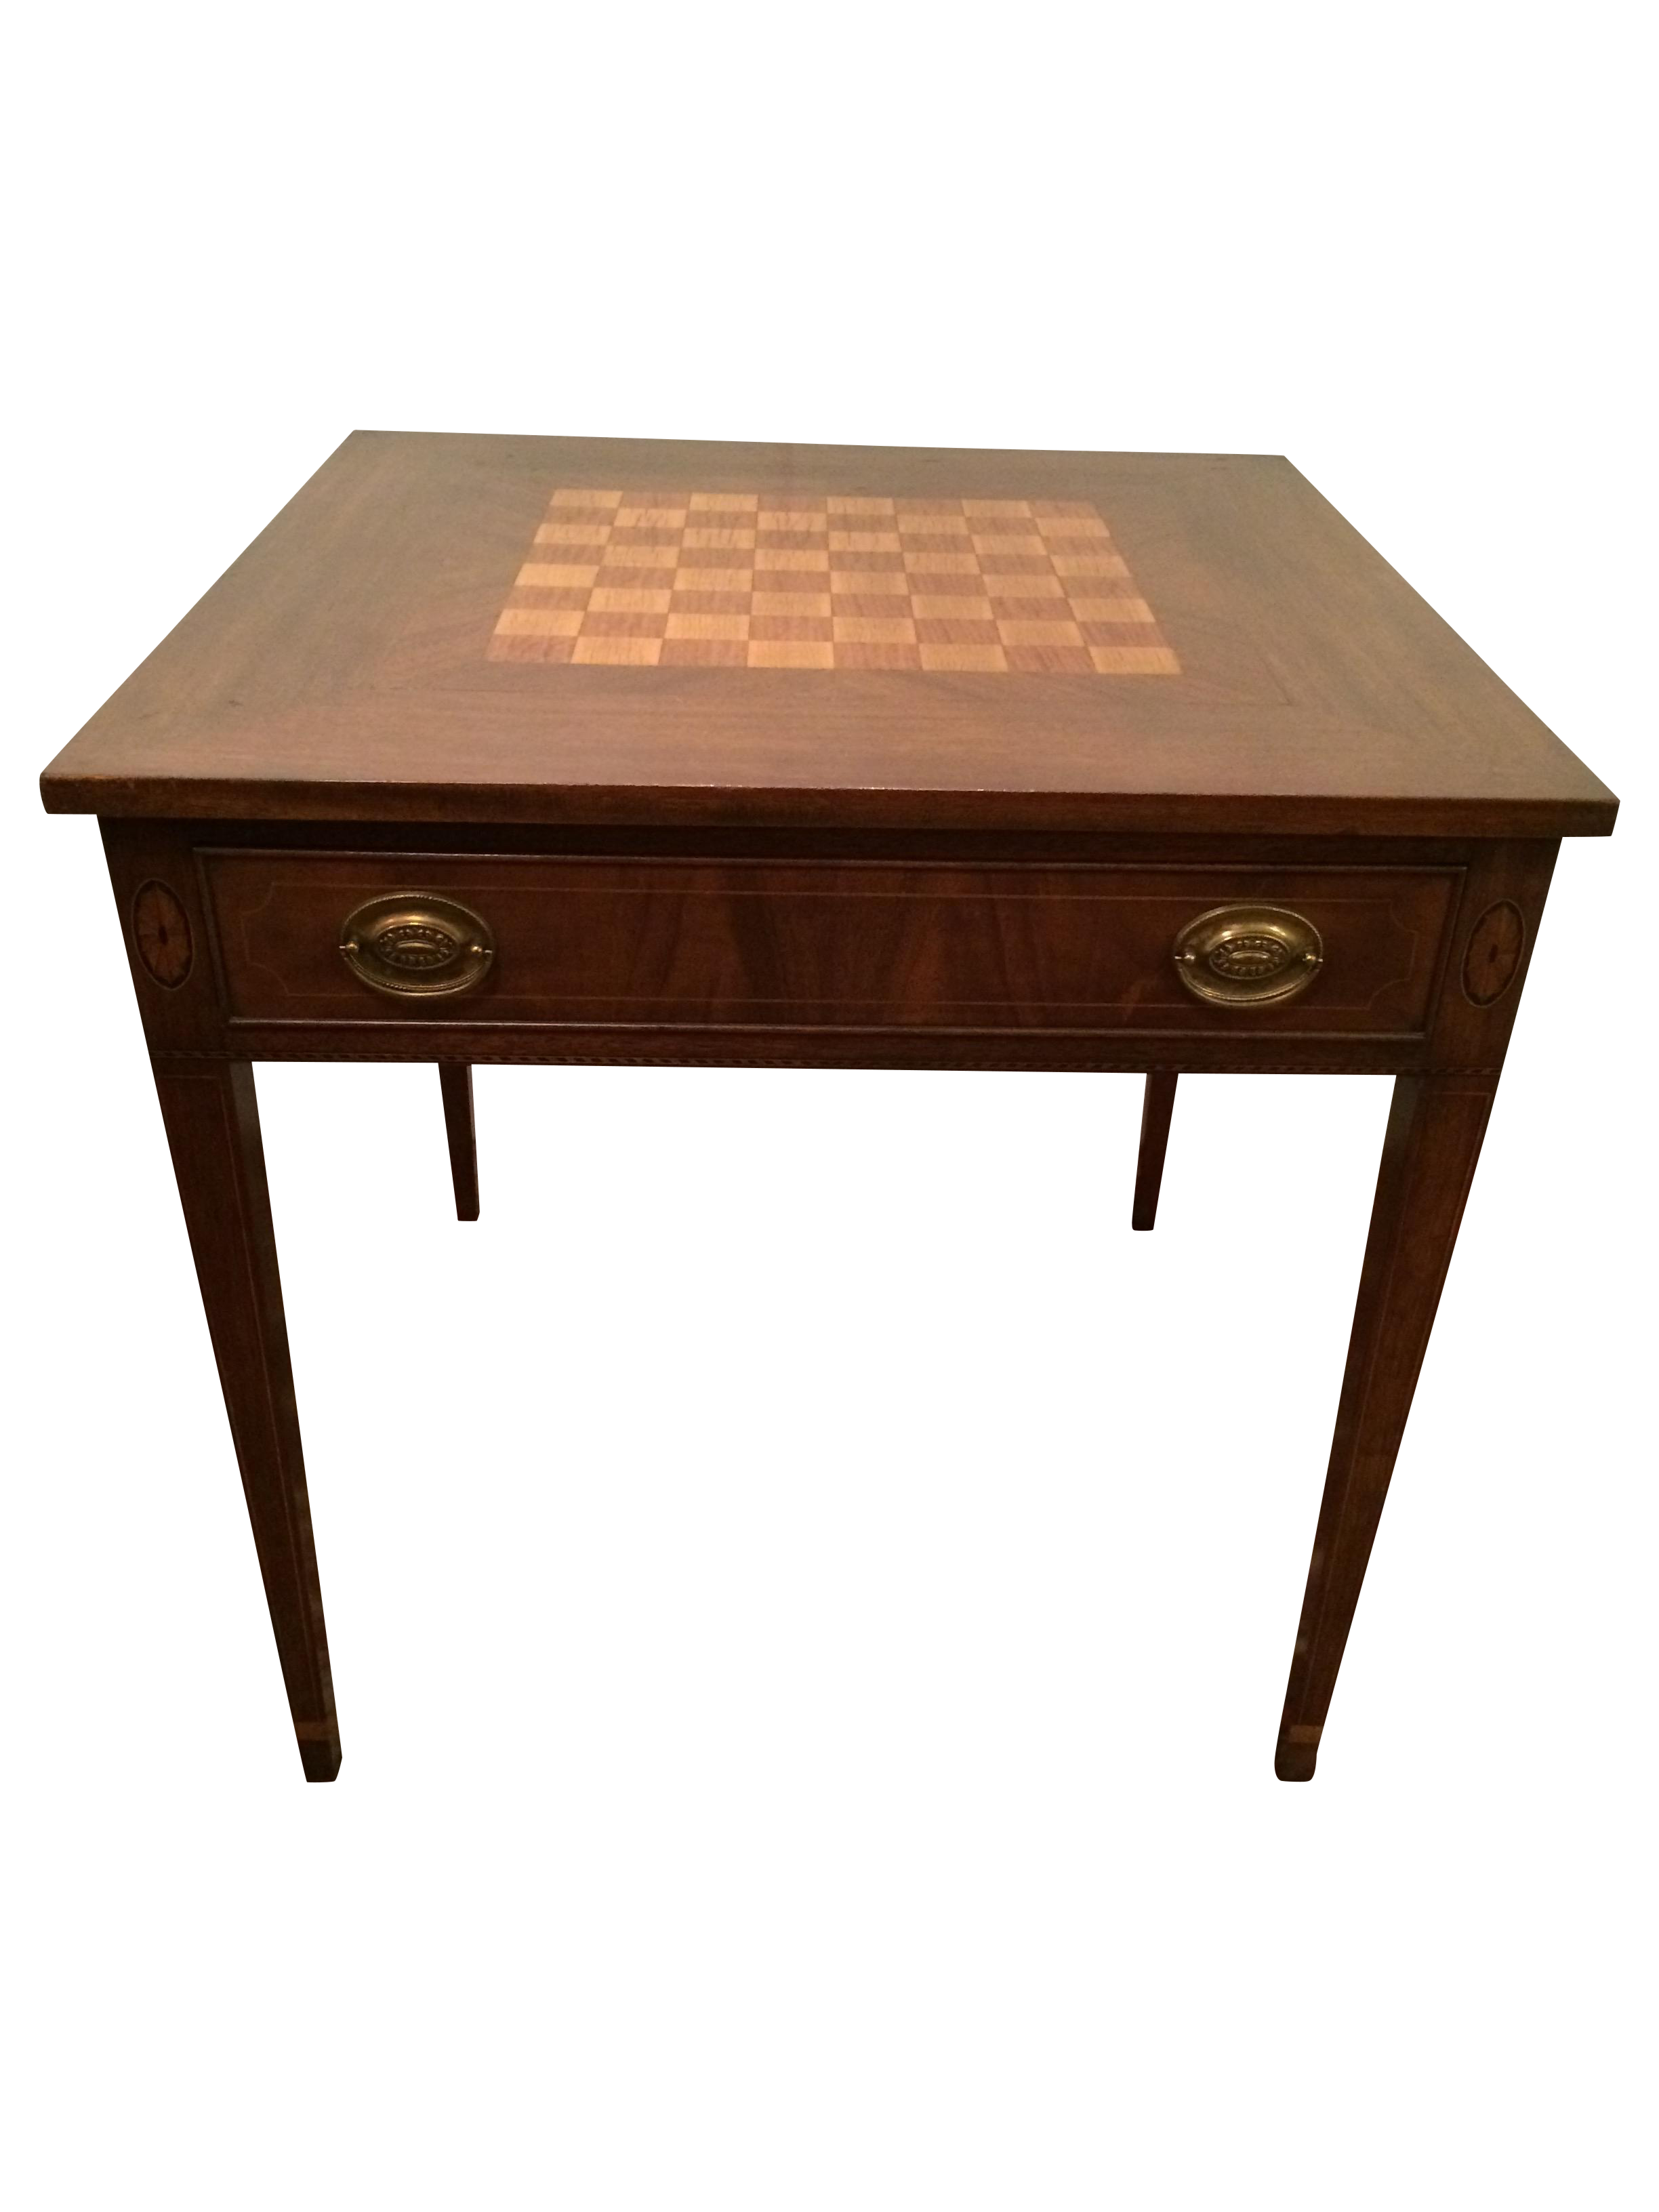 Potthast Inlaid Chess Checkers Game Table